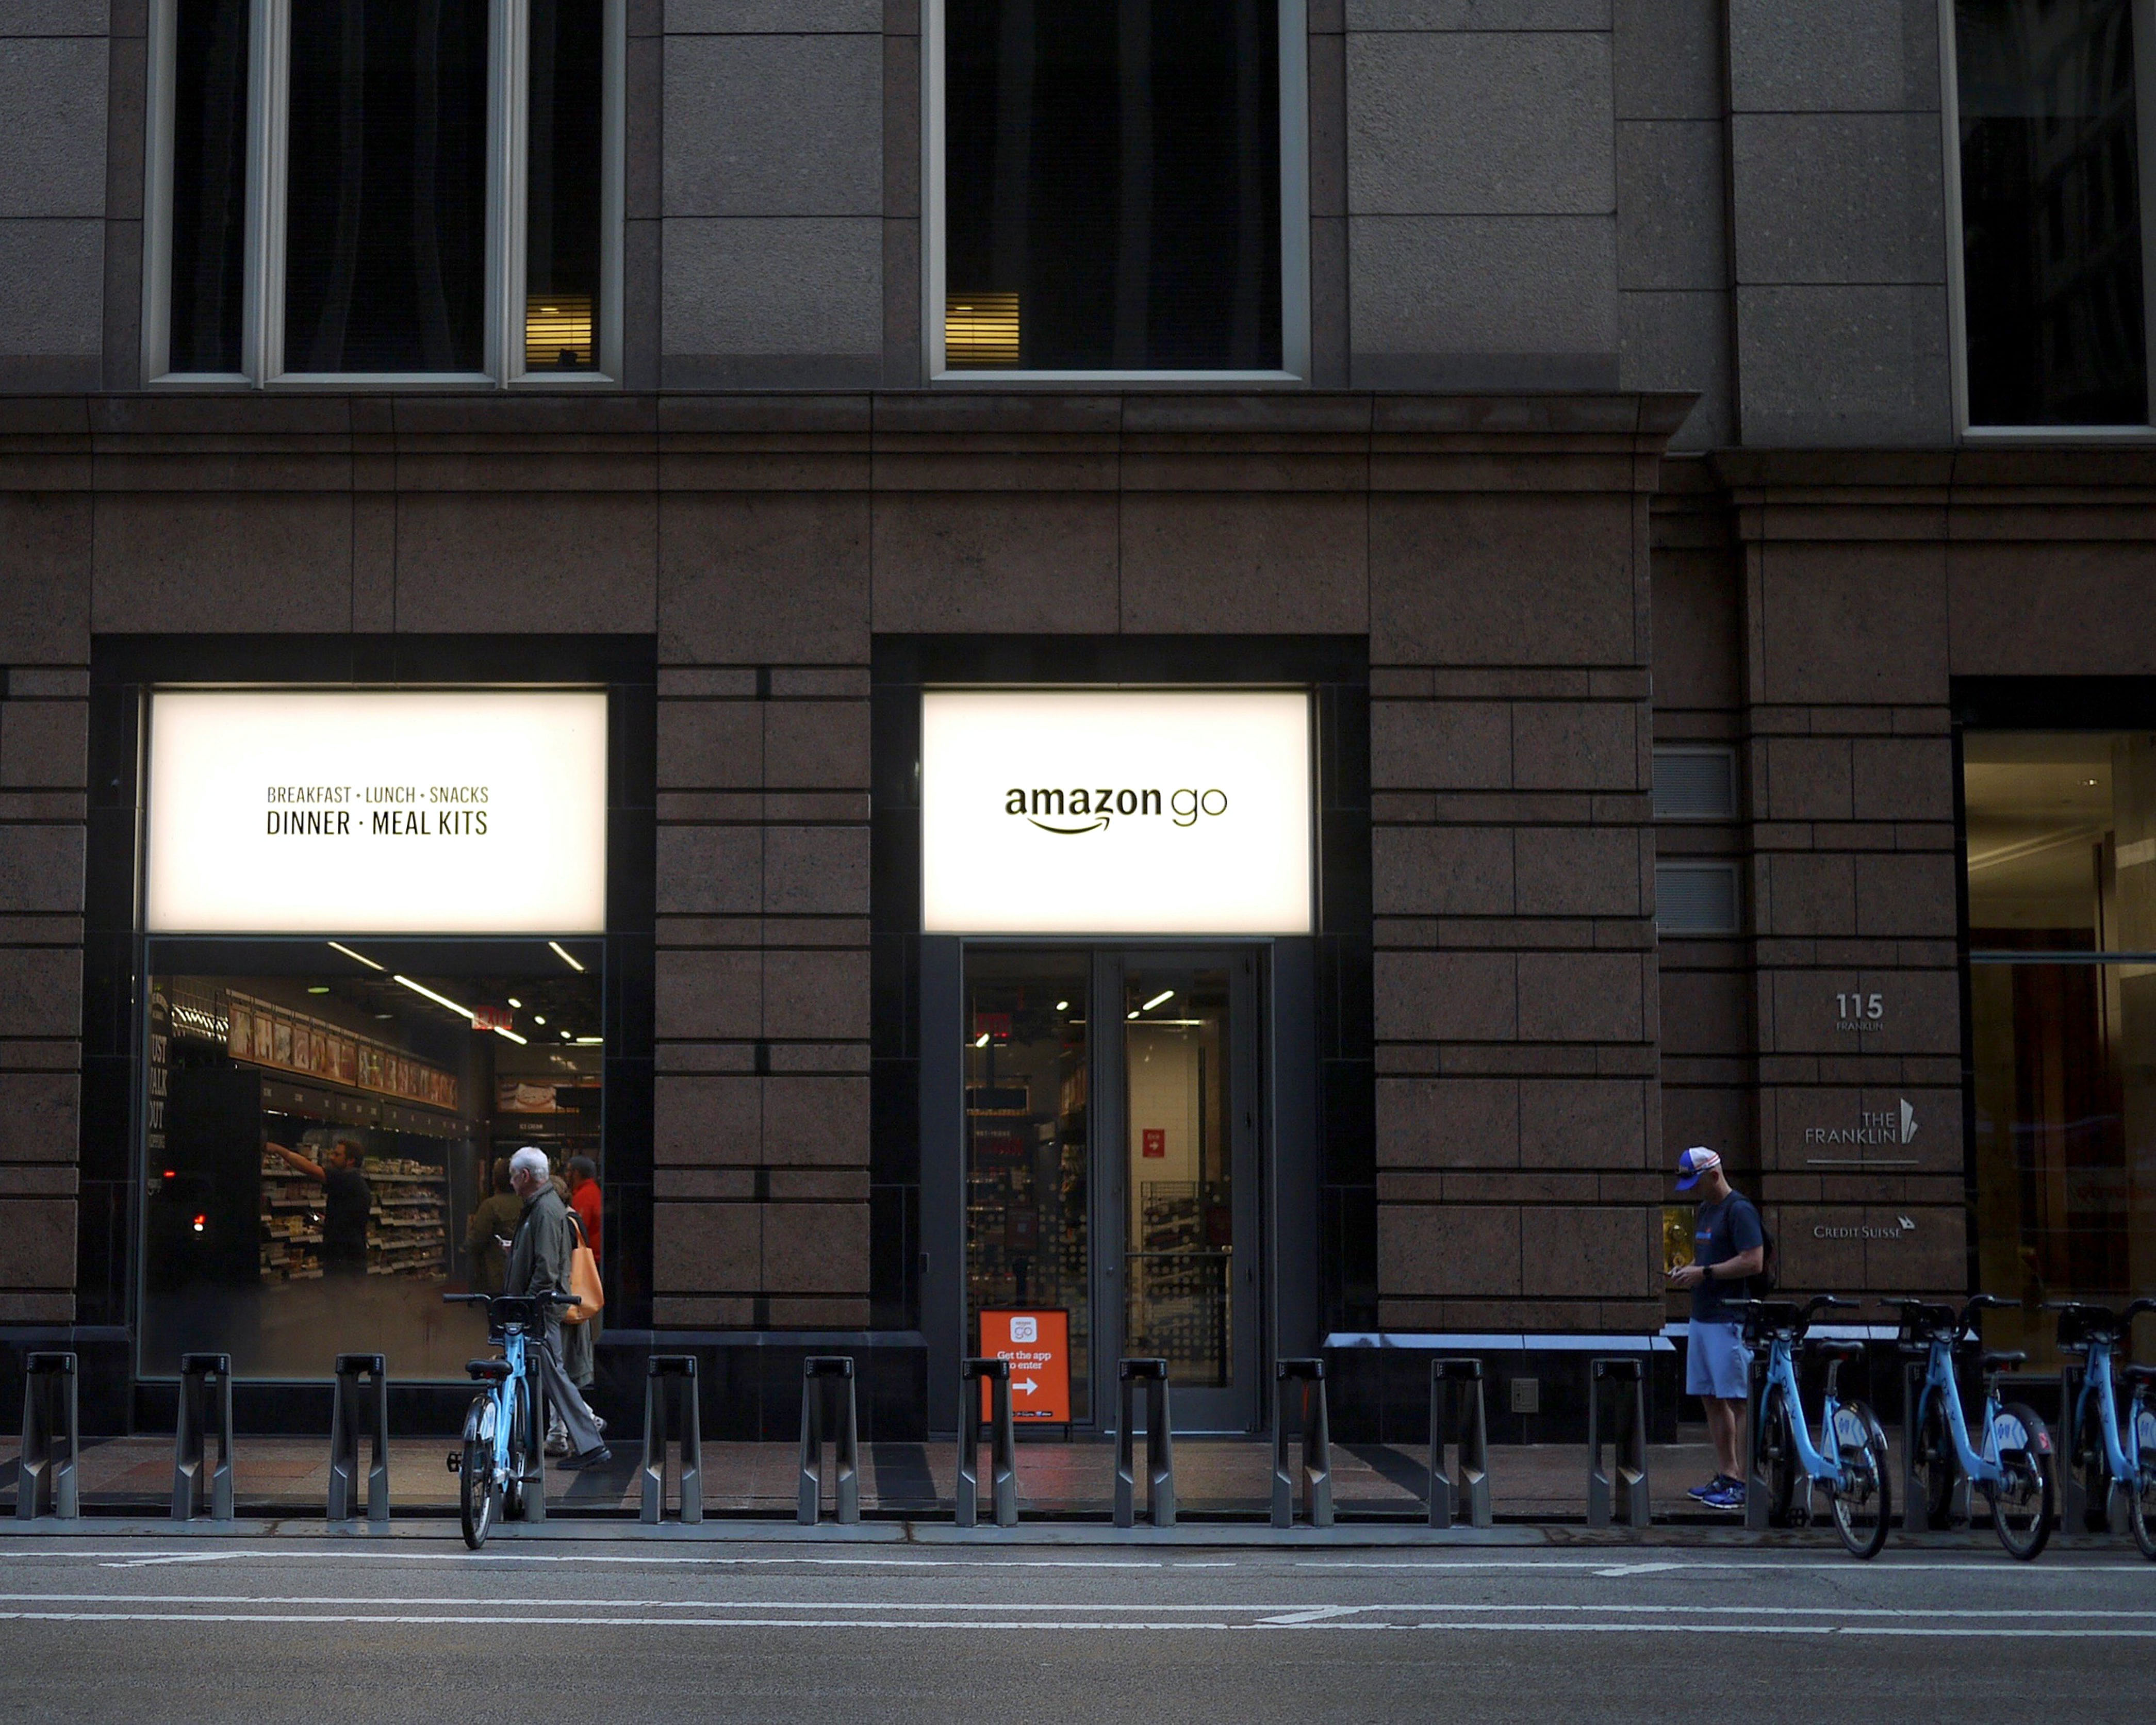 A photo of an exterior downtown office building in Chicago. A blue Divvy bike station is in front of two windows with a white Amazon Go sign.